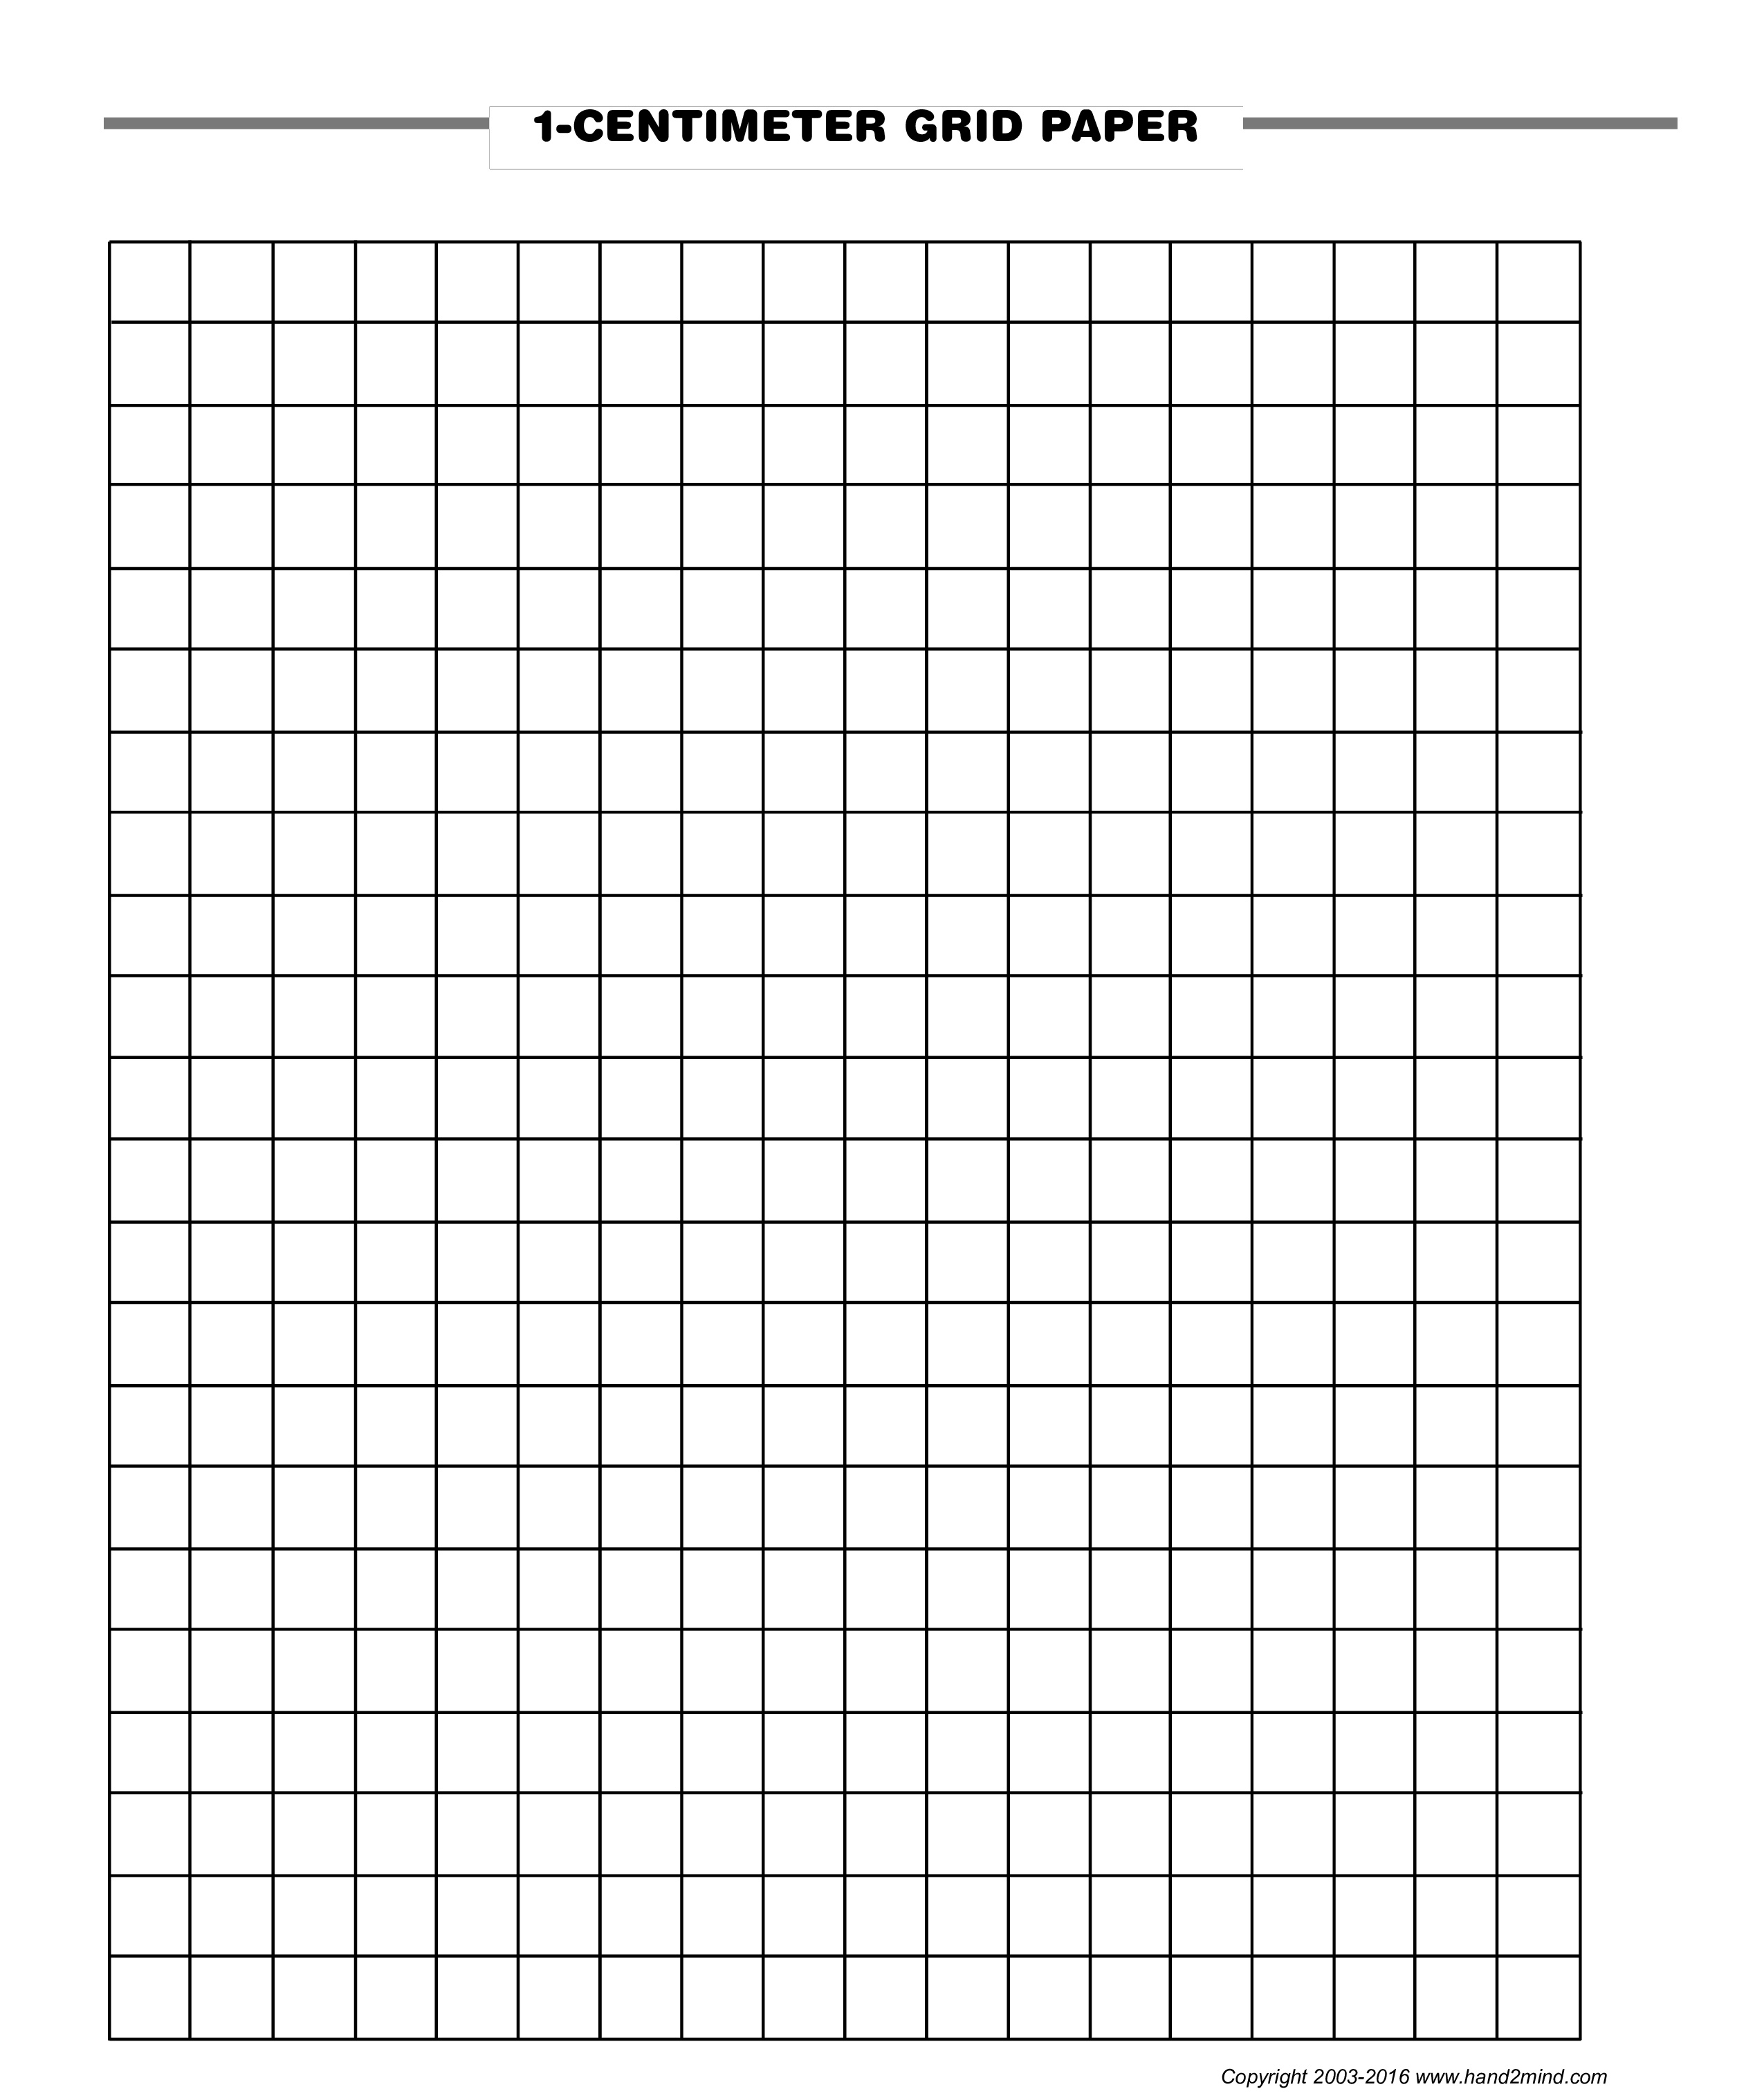 Printable Graph Paper Cm - Demir.iso-Consulting.co - Free Printable Graph Paper